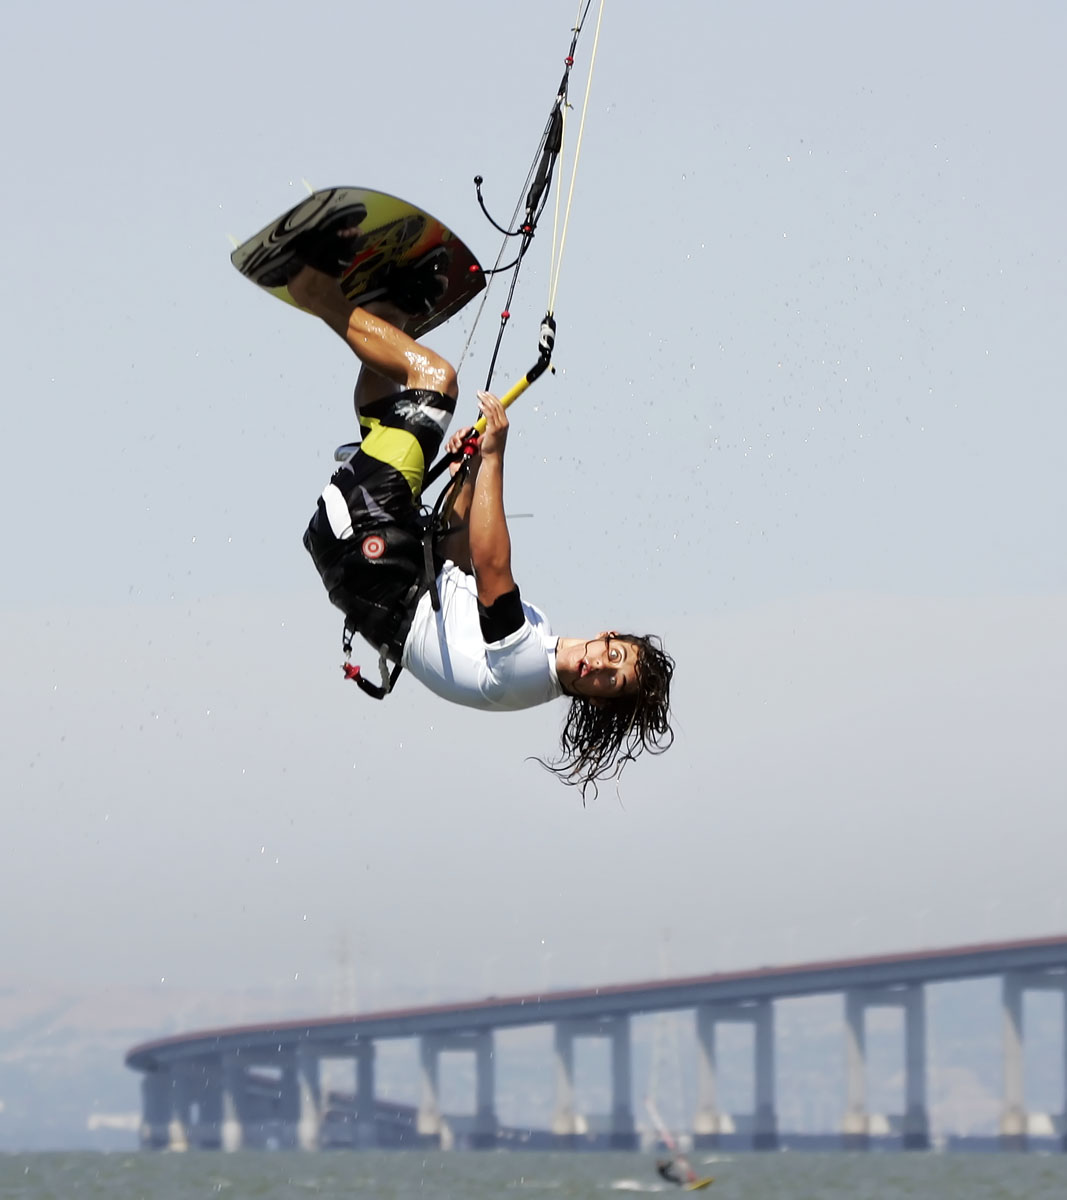 Wild Eyed Kite Boarder Goes Upside Down, King of the Bay, Foster City